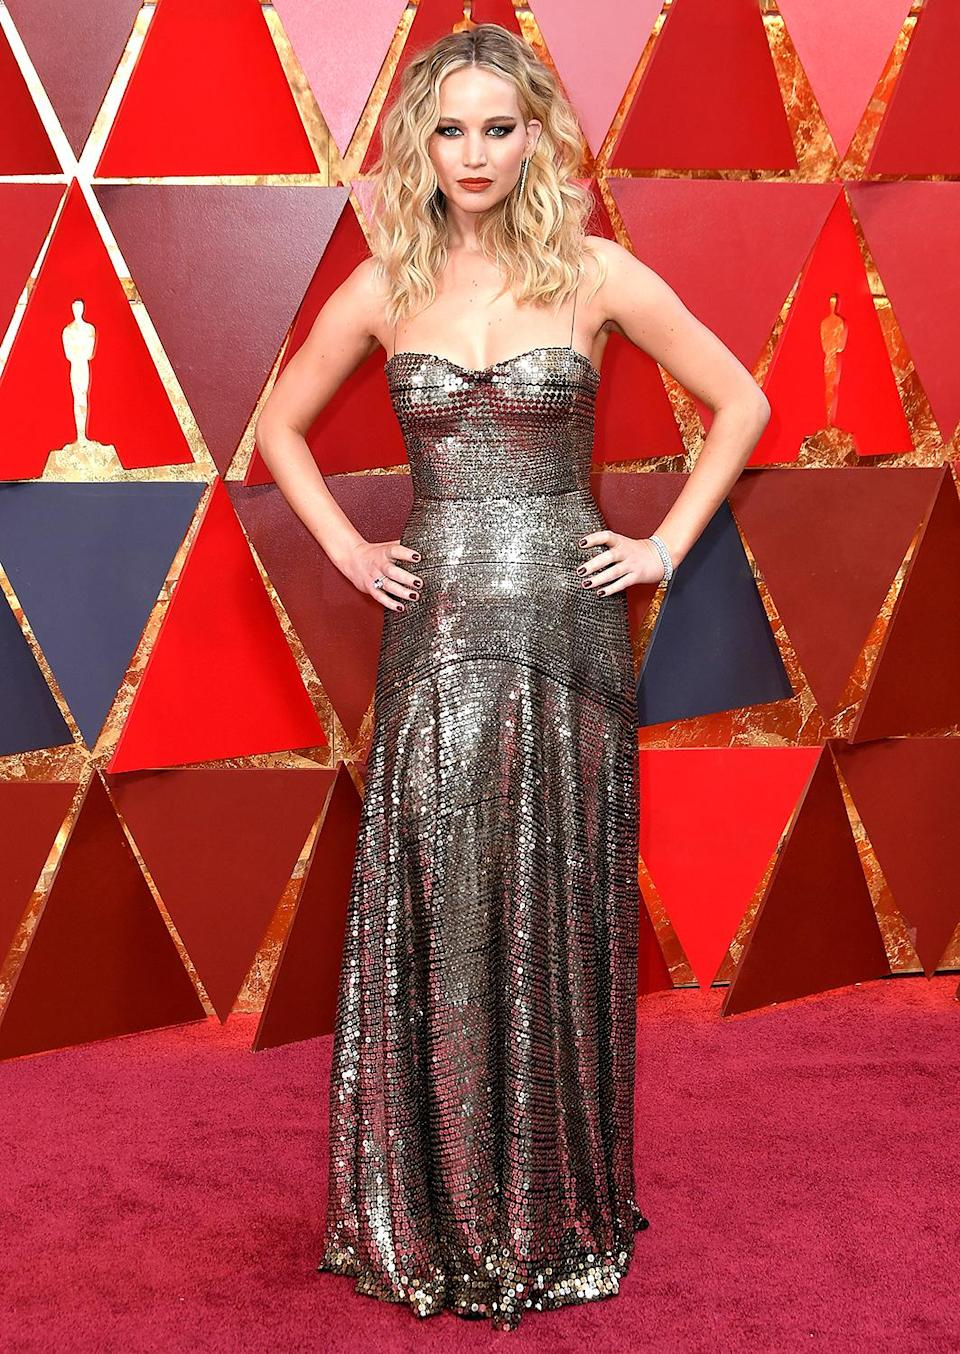 Jennifer Lawrence on the red carpet at the 90th Annual Academy Awards (Photo by Neilson Barnard/Getty Images)